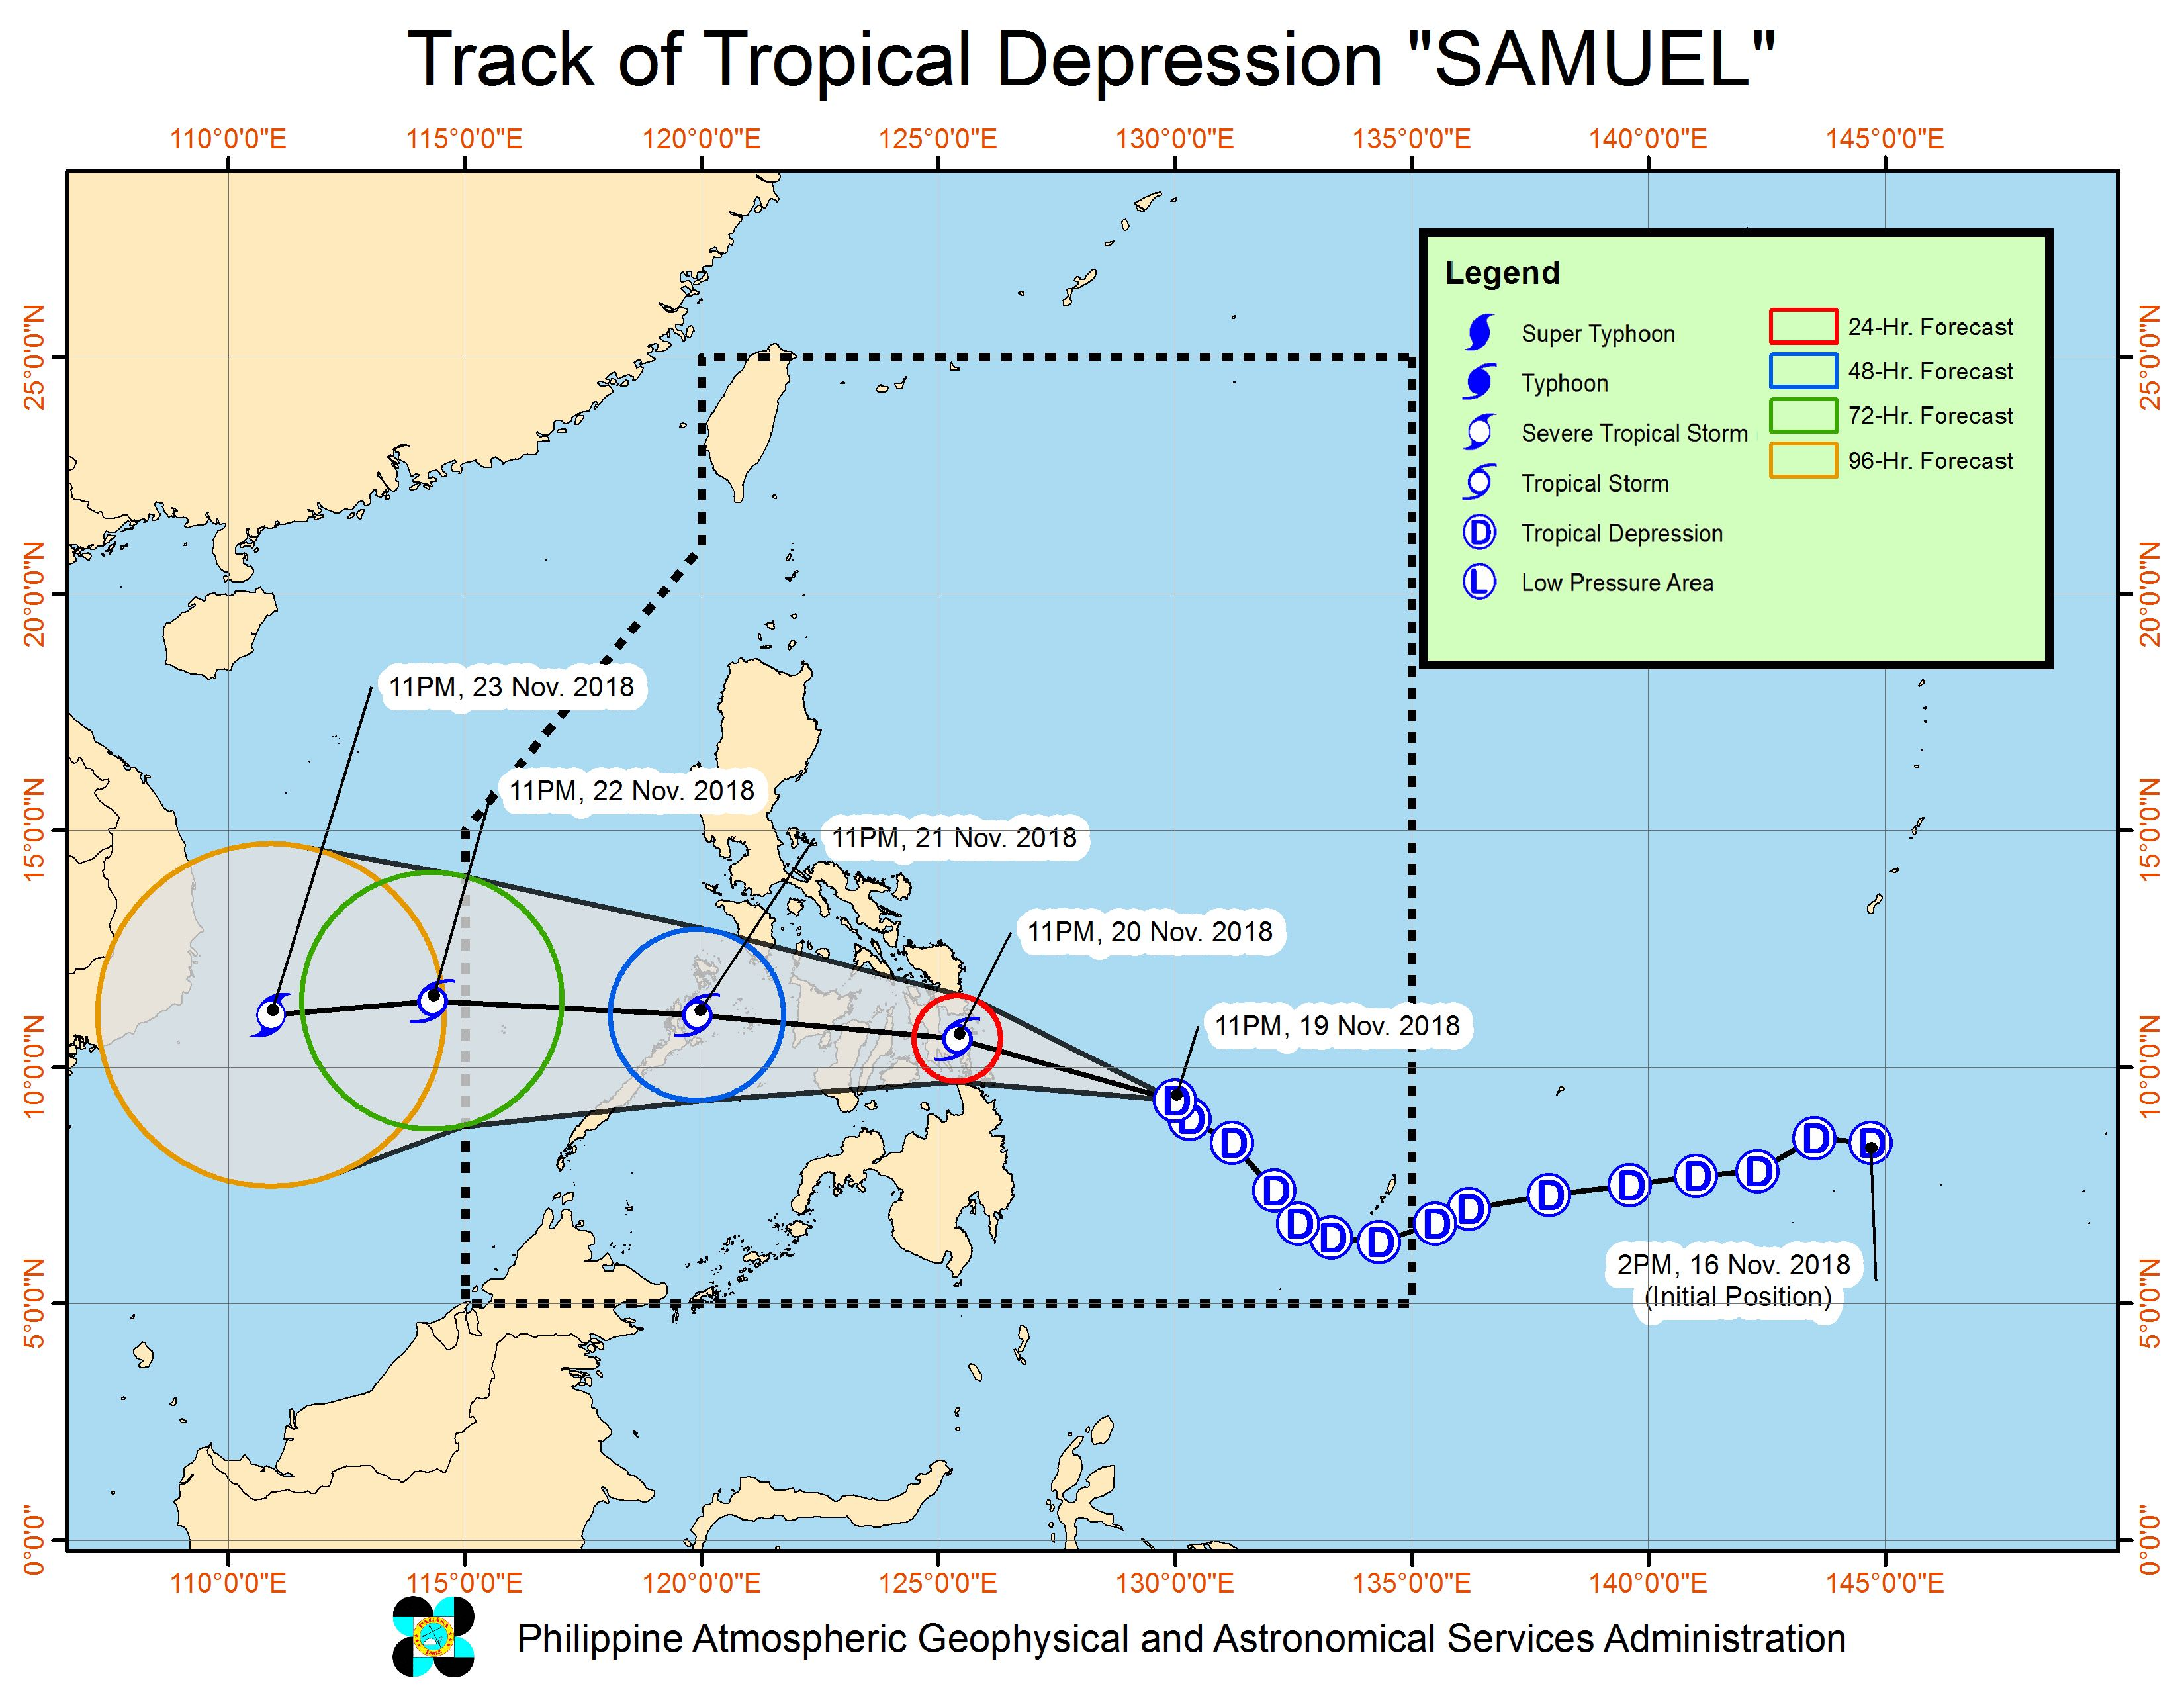 Forecast track of Tropical Depression Samuel as of November 20, 2018, 2 am. Image from PAGASA